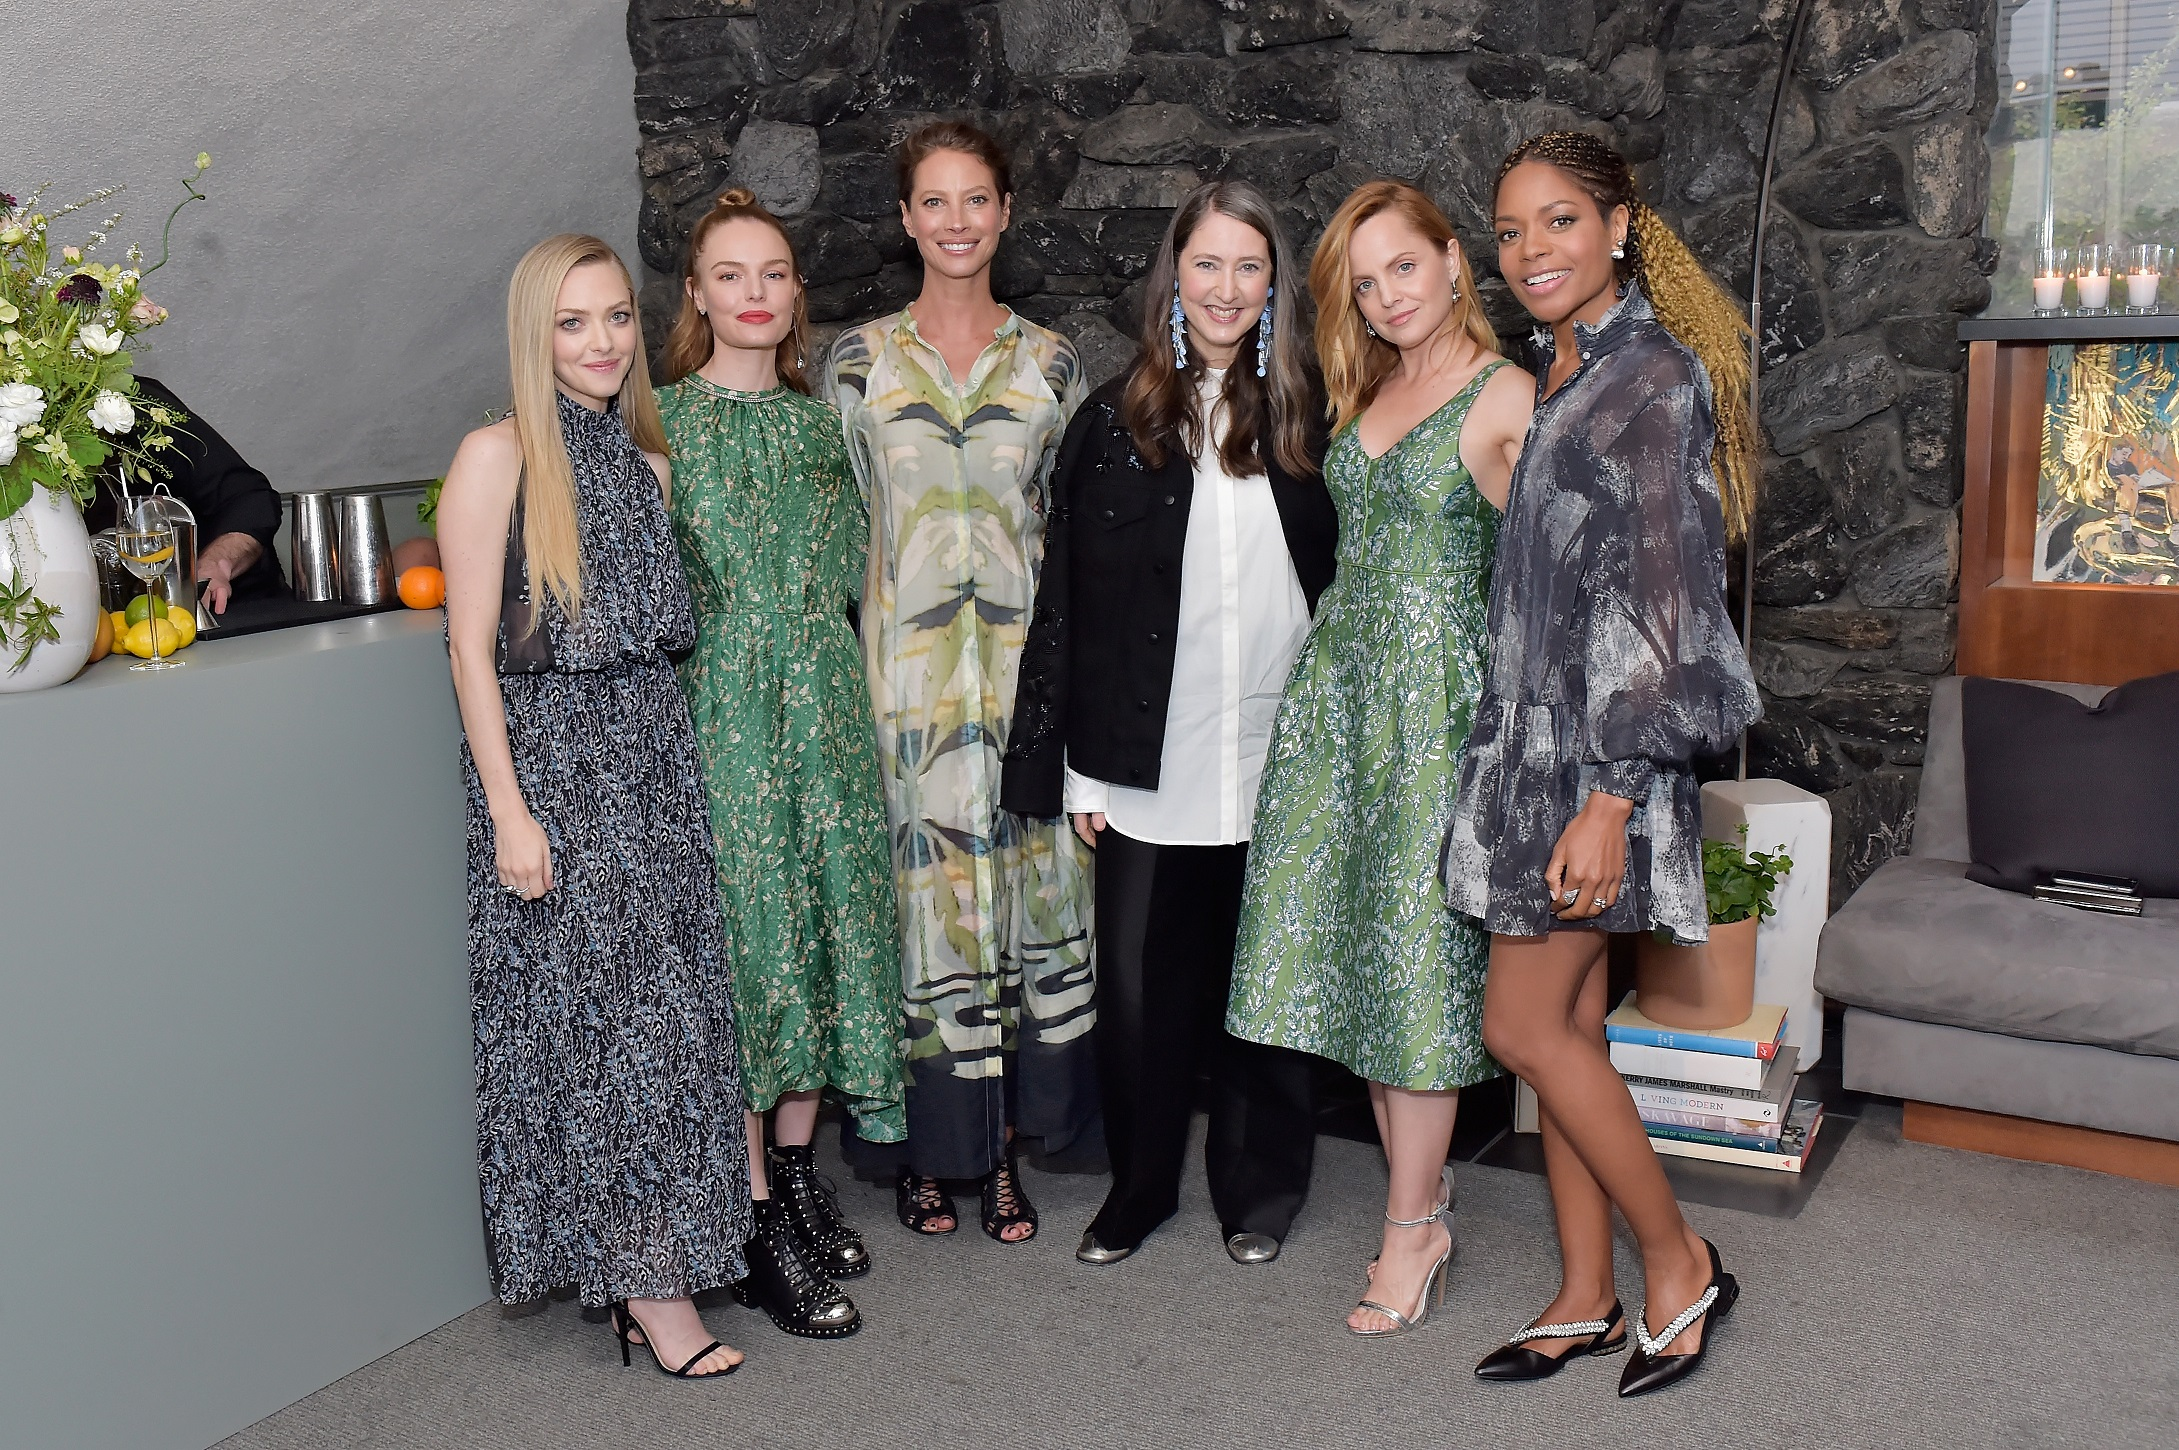 attends the H&M celebration of 2018 Conscious Exclusive collection at John Lautner's Harvey House on April 5, 2018 in Los Angeles, California.